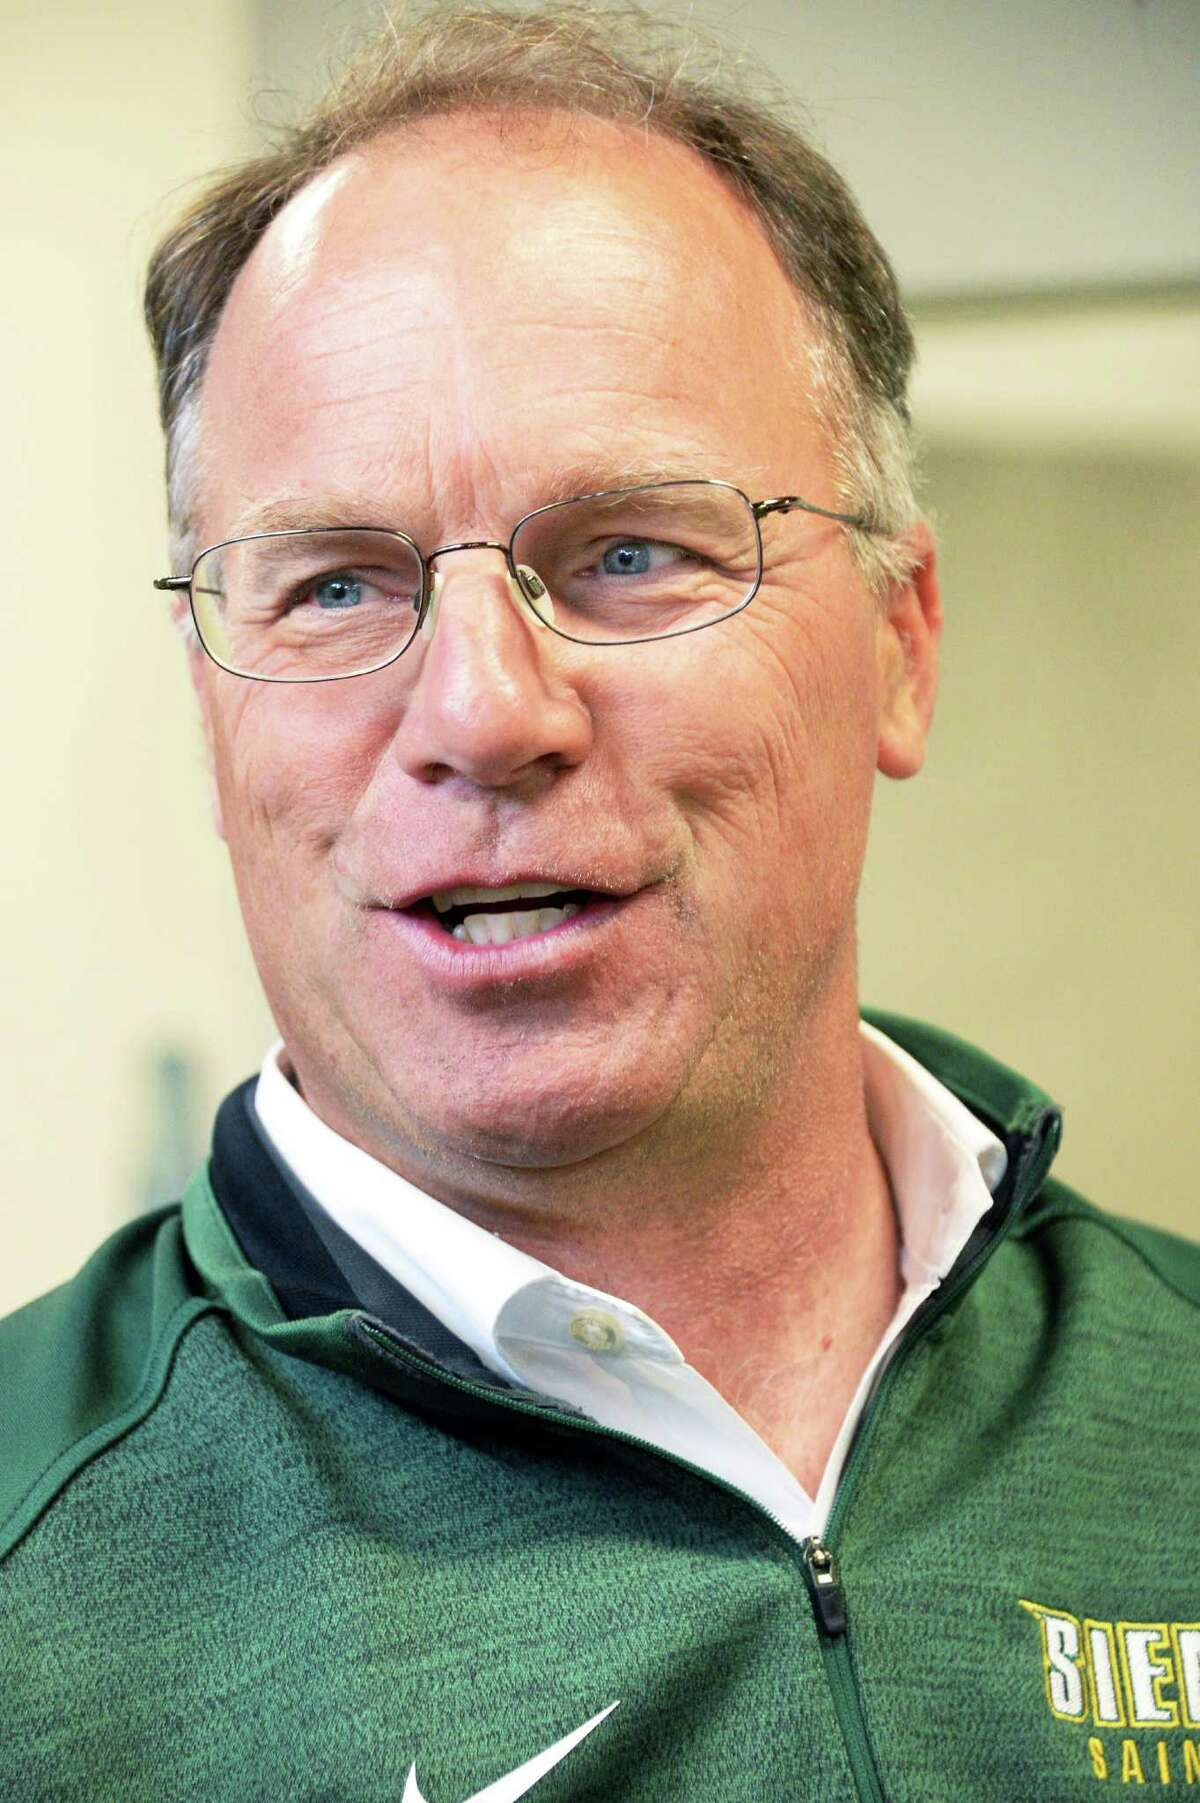 MAAC Champion Siena Men's Golf team head coach Steven Jensen talks about heading to Tucson, Arizona for the NCAA Tournament Thursday May 5, 2015 in Colonie, NY. (John Carl D'Annibale / Times Union)